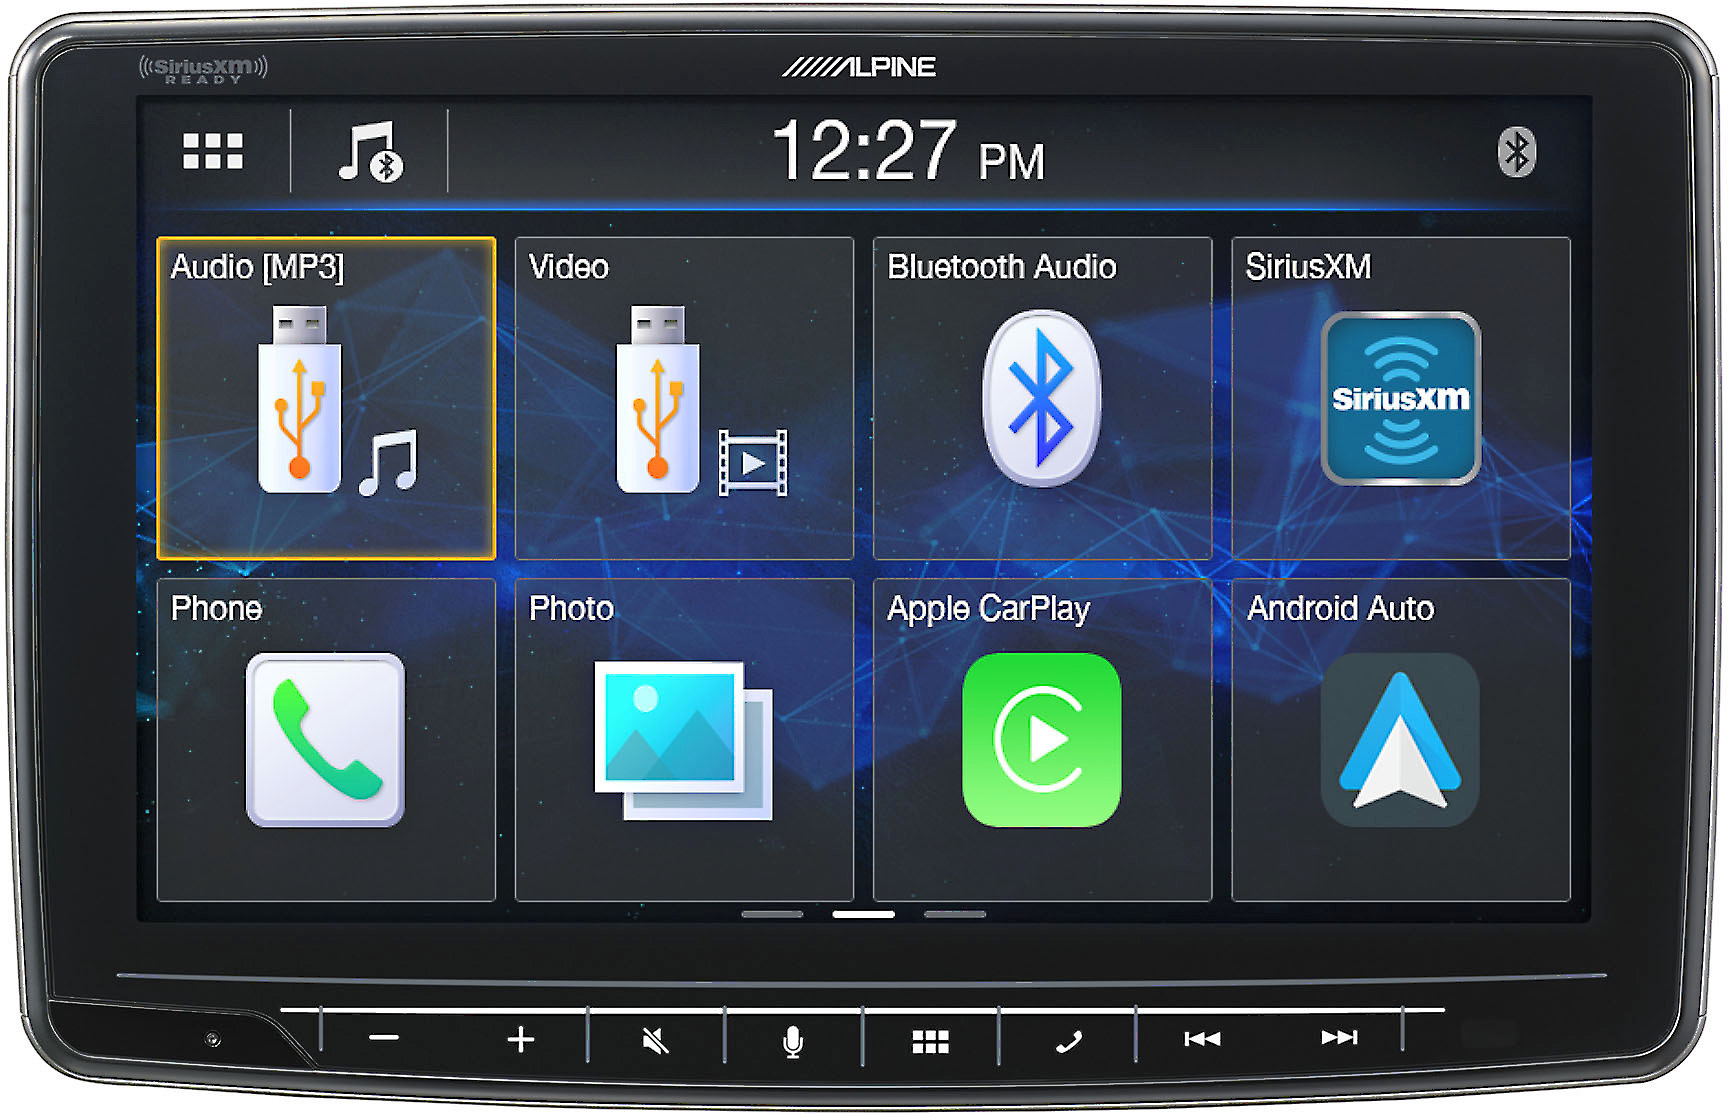 hight resolution of alpine ilx f259 digital multimedia receiver a 9 touchscreen that fits in a din dash opening does not play cds at crutchfield